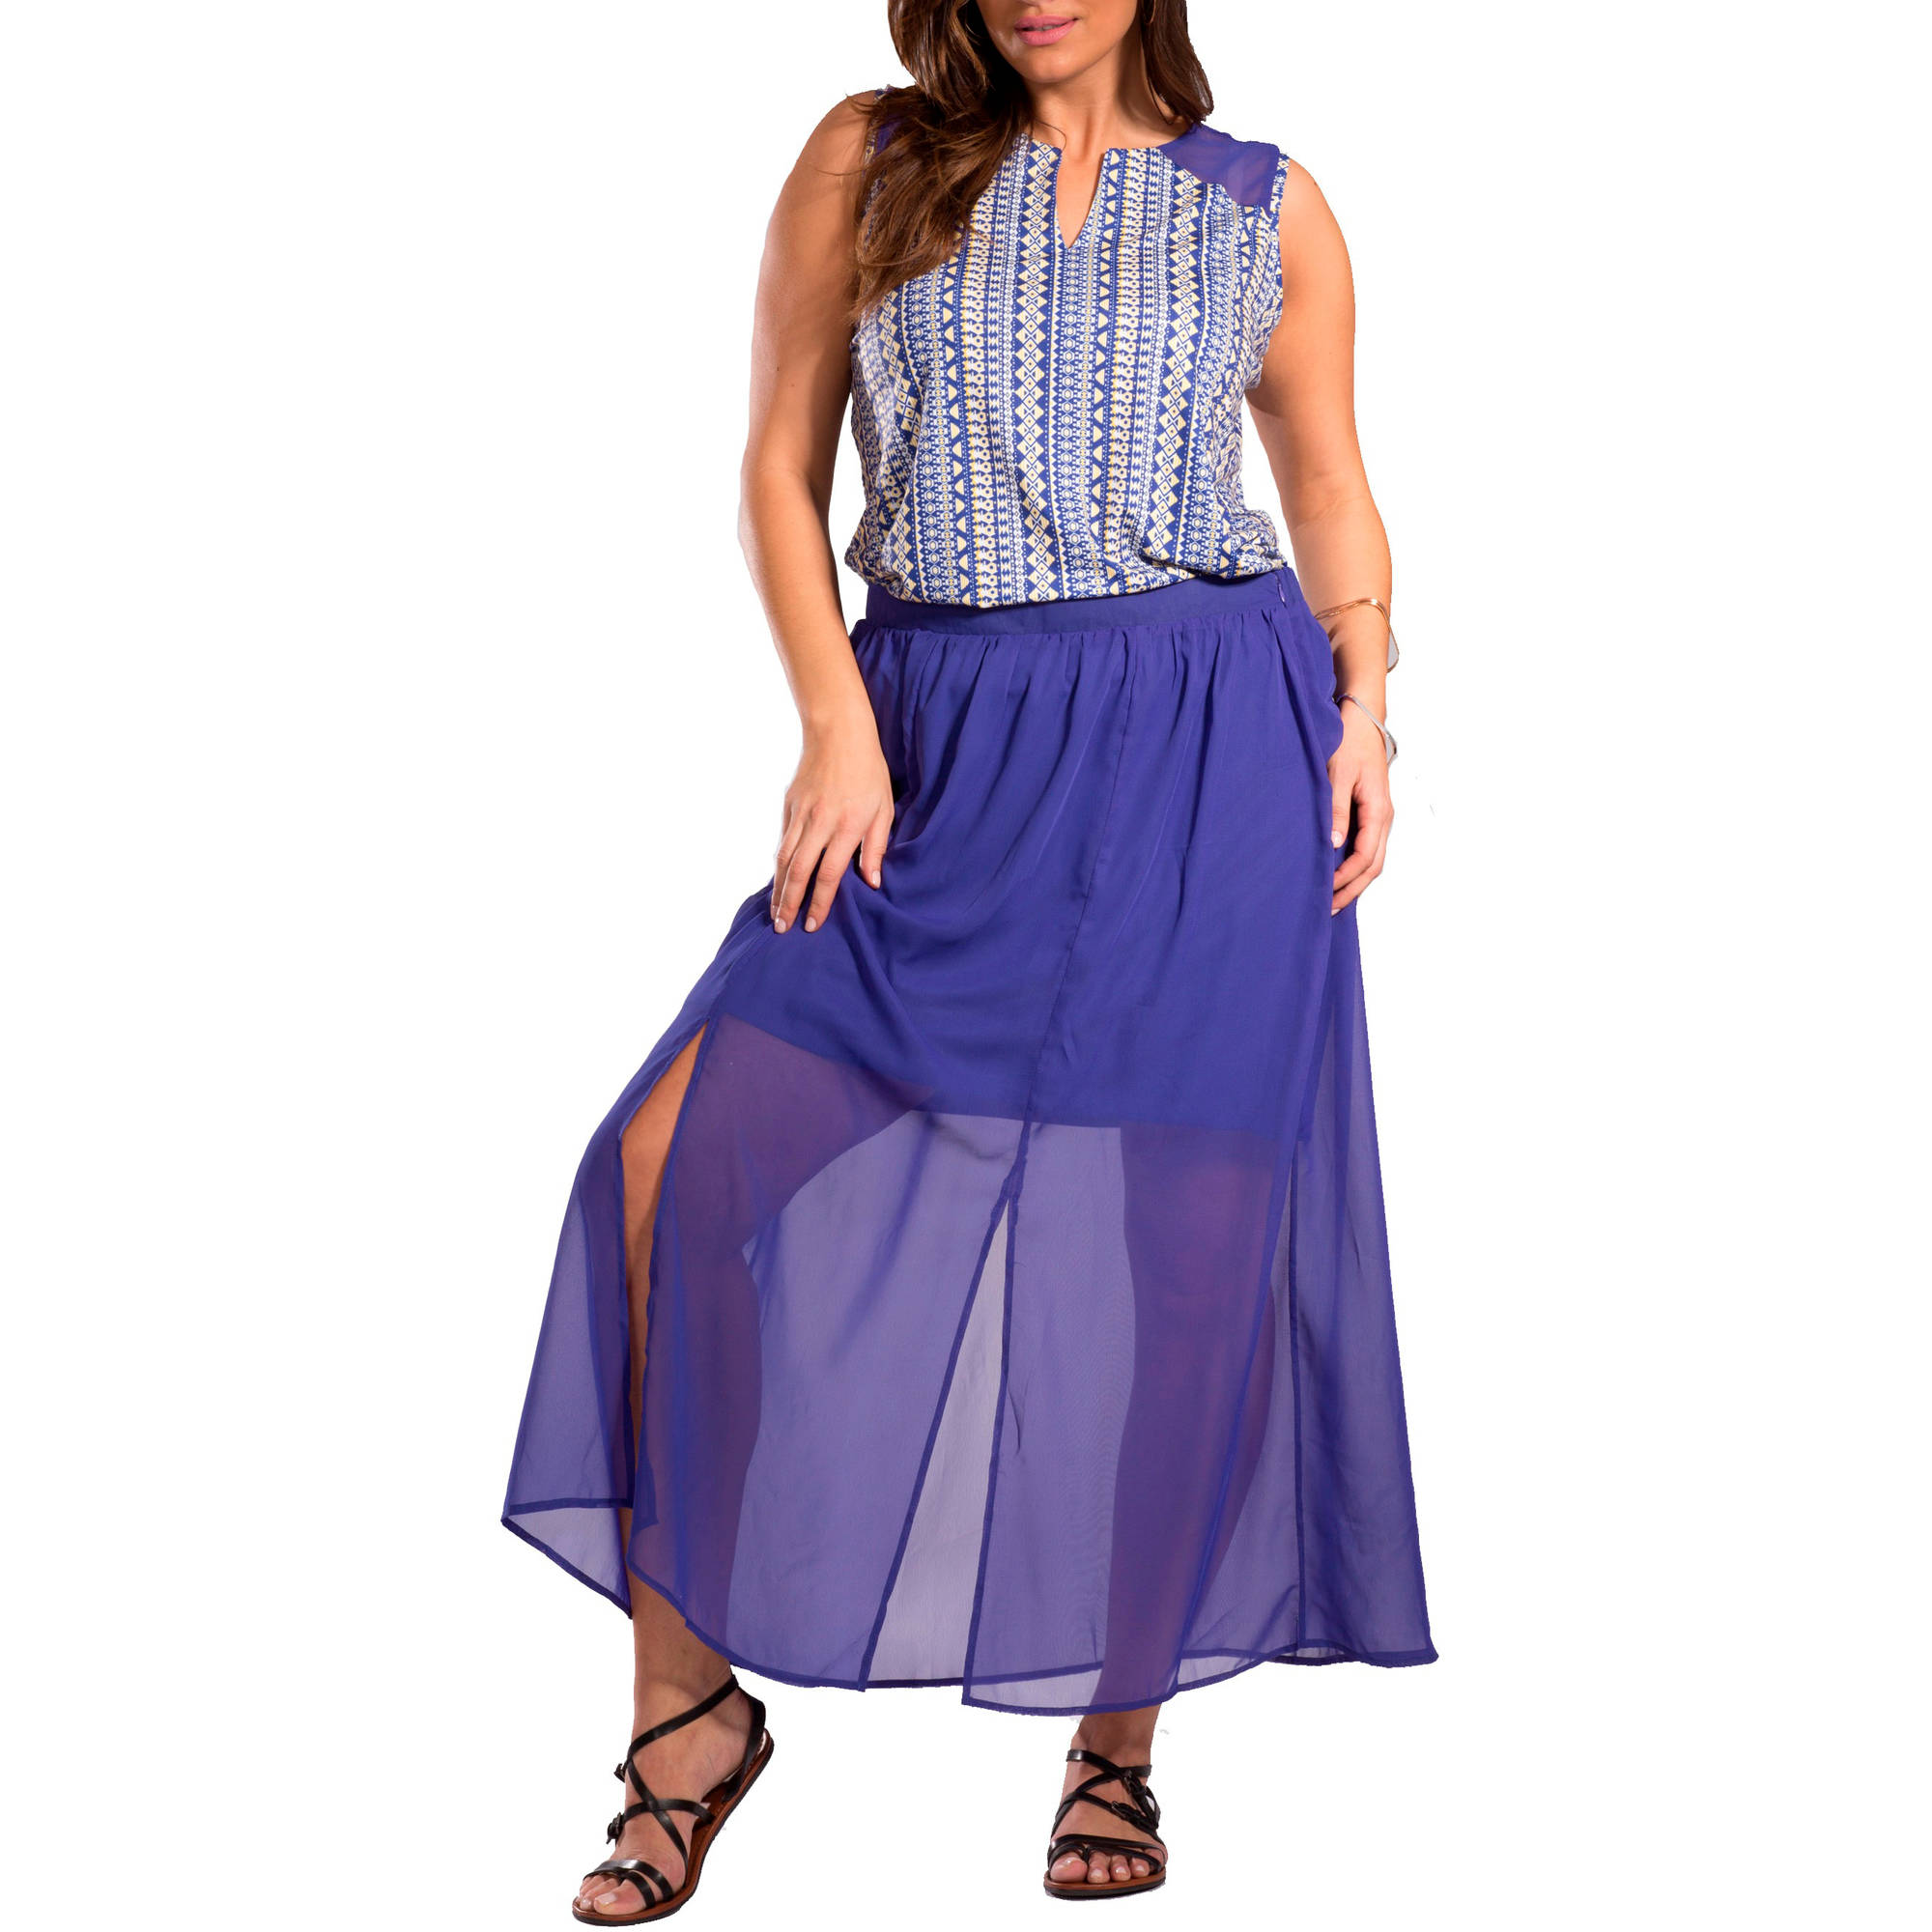 Plus Moda Women's Plus-Size Pop Tribal Maxi Skirt with Side Slits